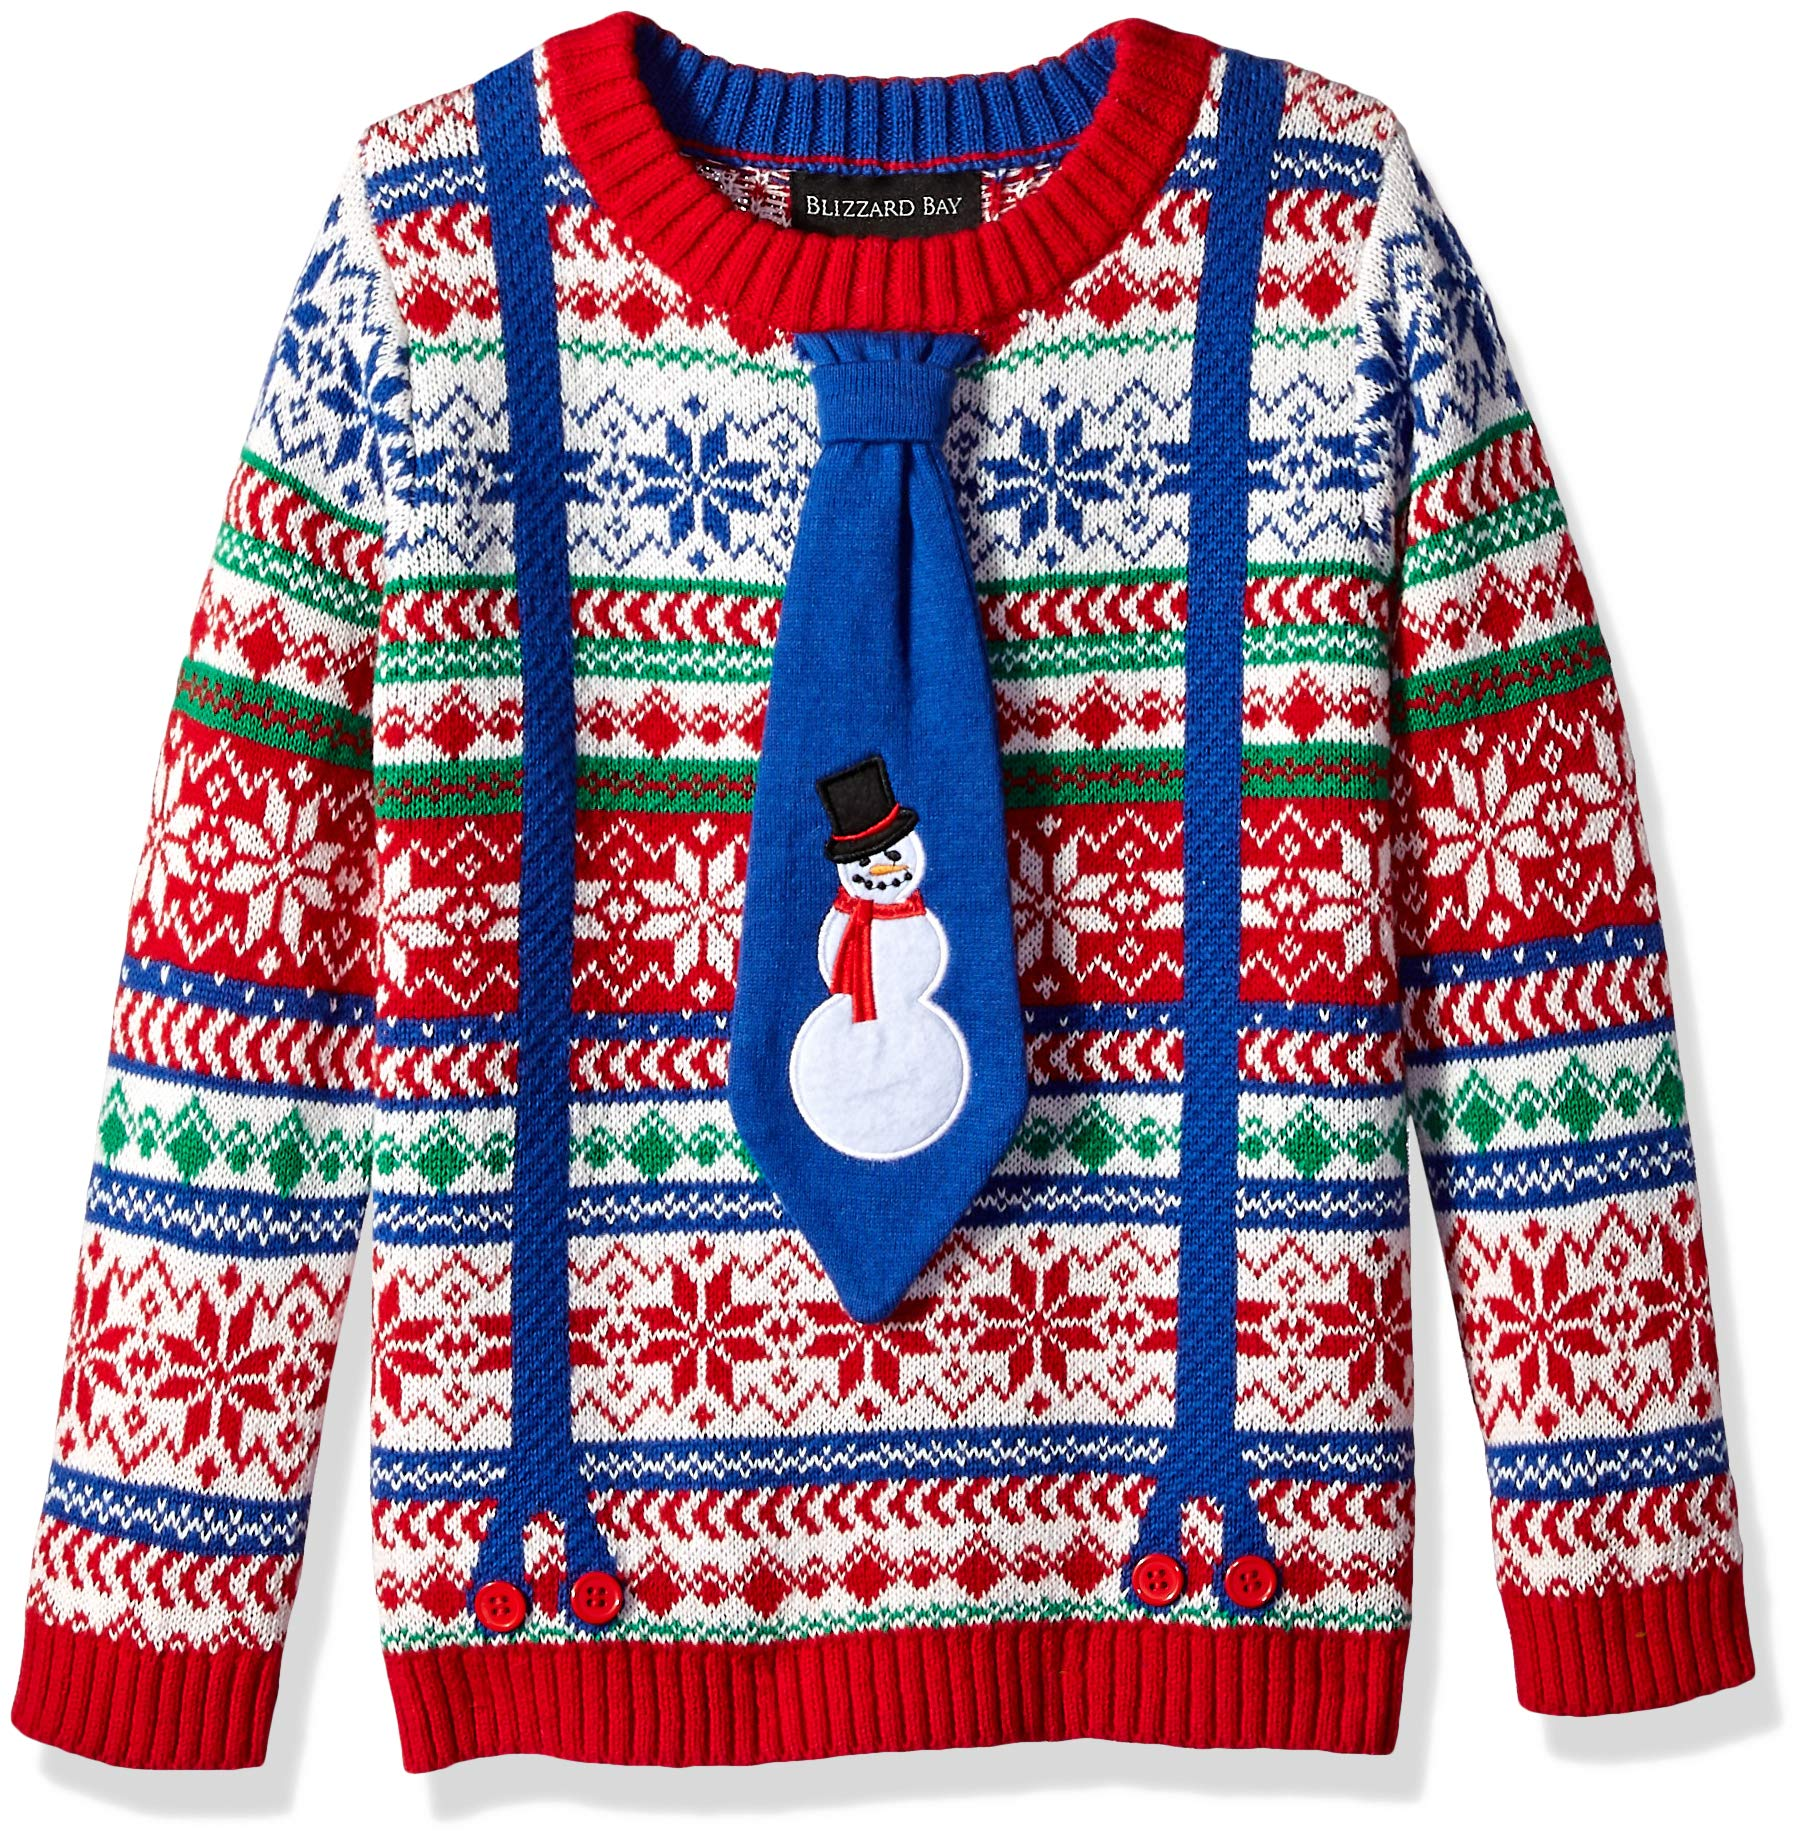 Blizzard Bay Boys' Big Crew Neck Snowman Suspenders Ugly Christmas Sweater, Blue Combo, L 14/16